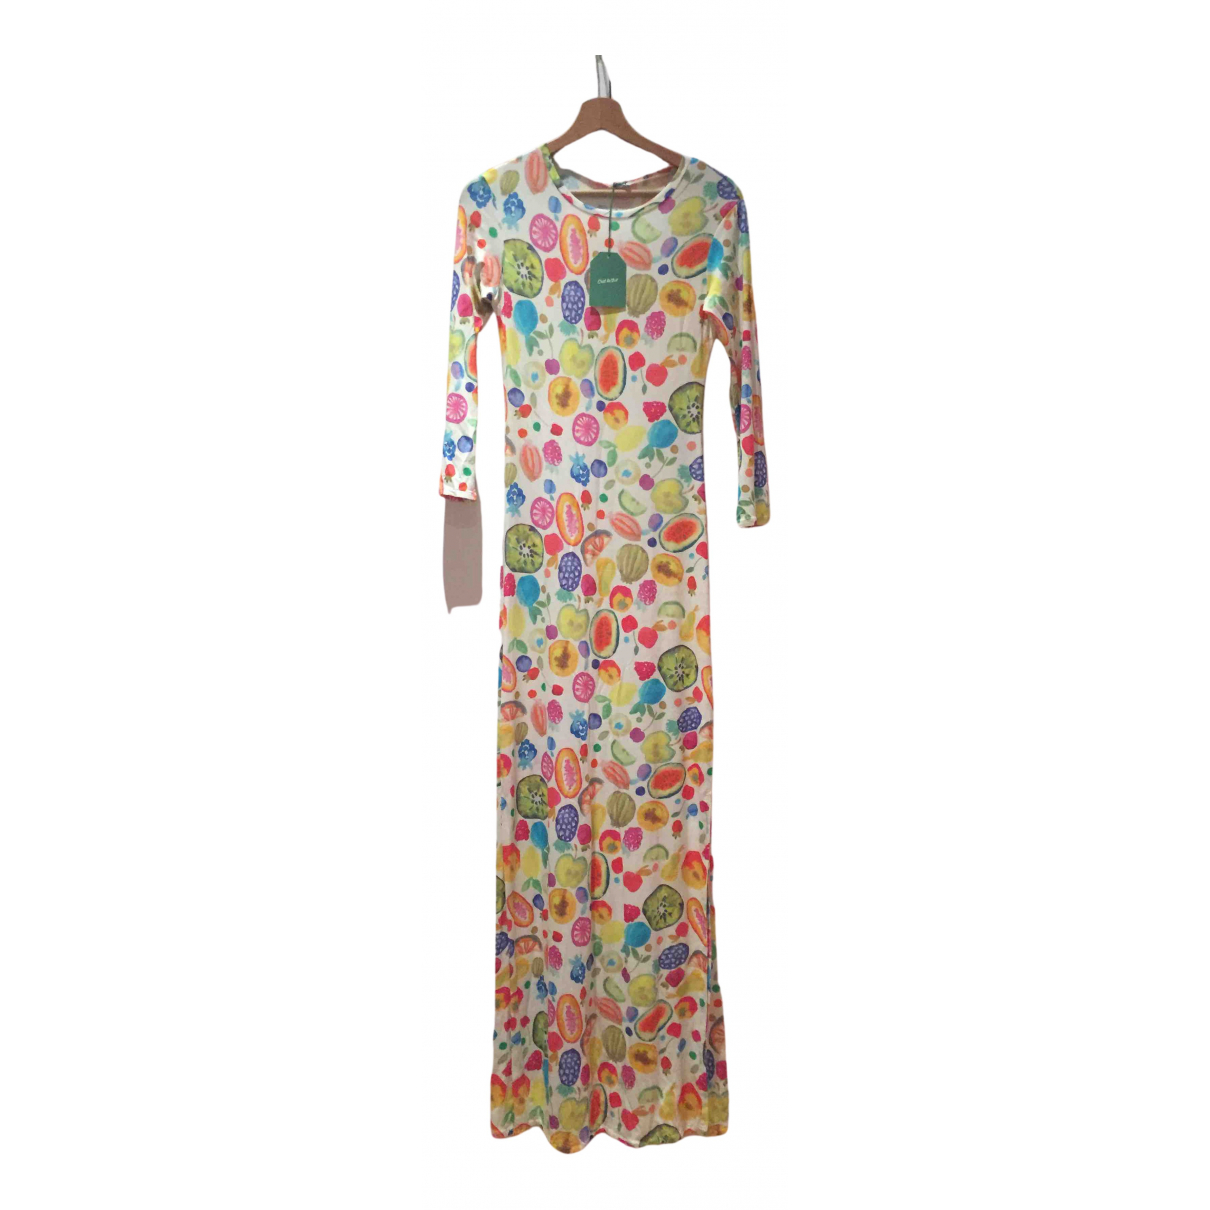 Cestlav N Multicolour dress for Women 34 FR